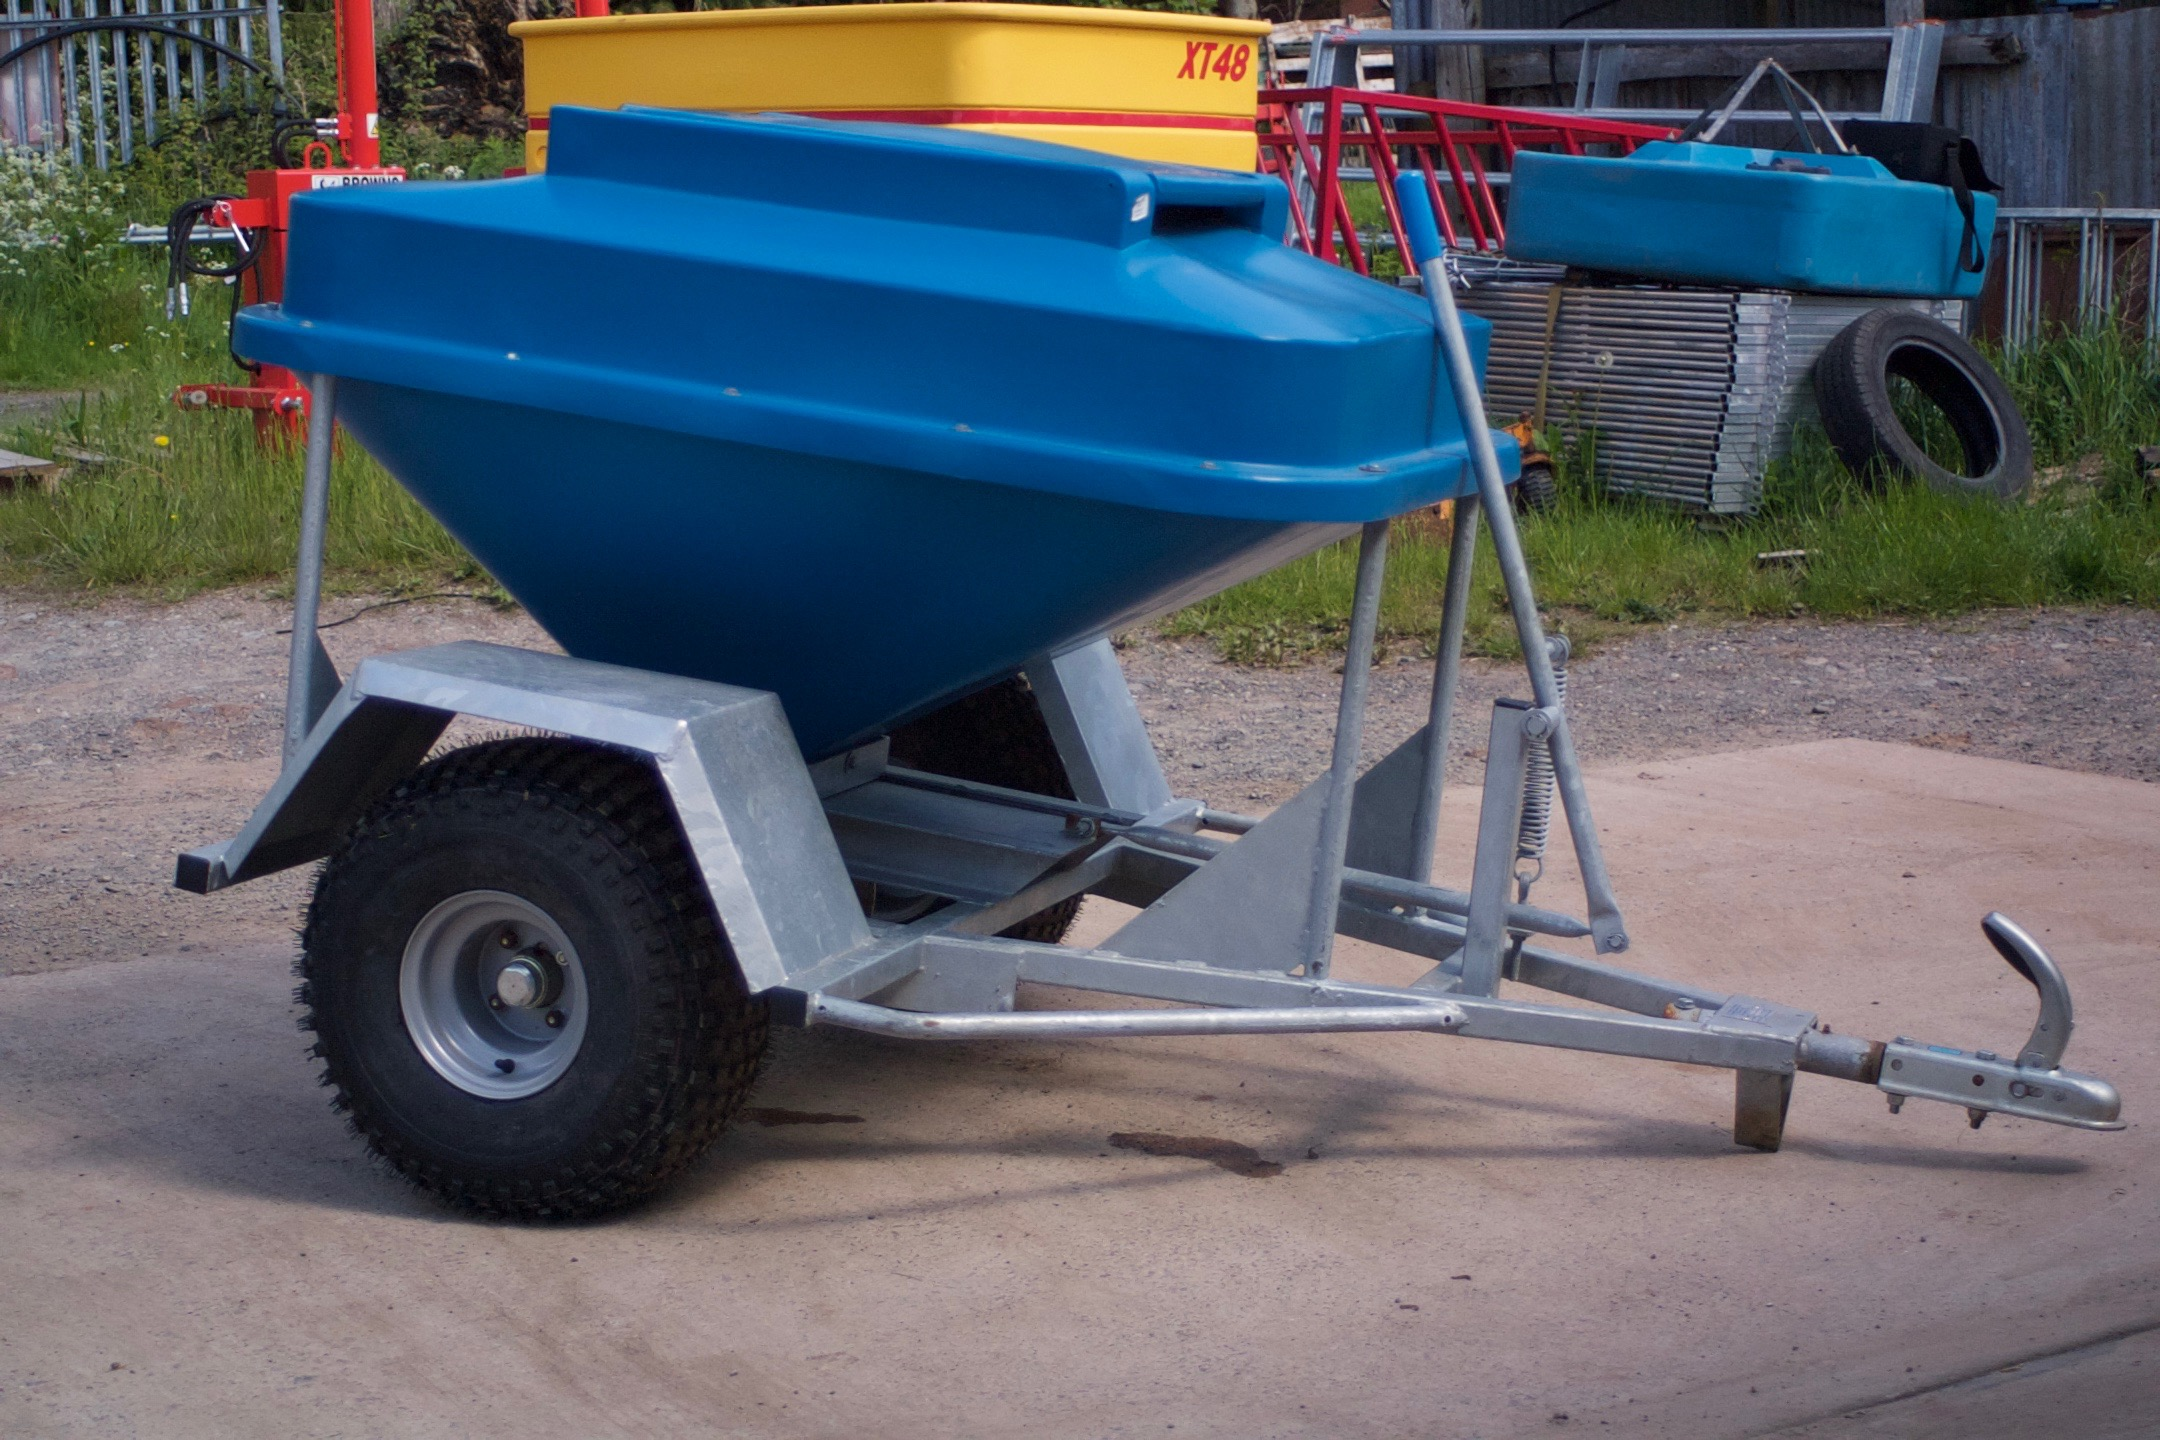 320kg capacity hopper with easy snap-shut lid. Barrel-type dispenser with 3 settings giving 0.75 to 2.5kg drops